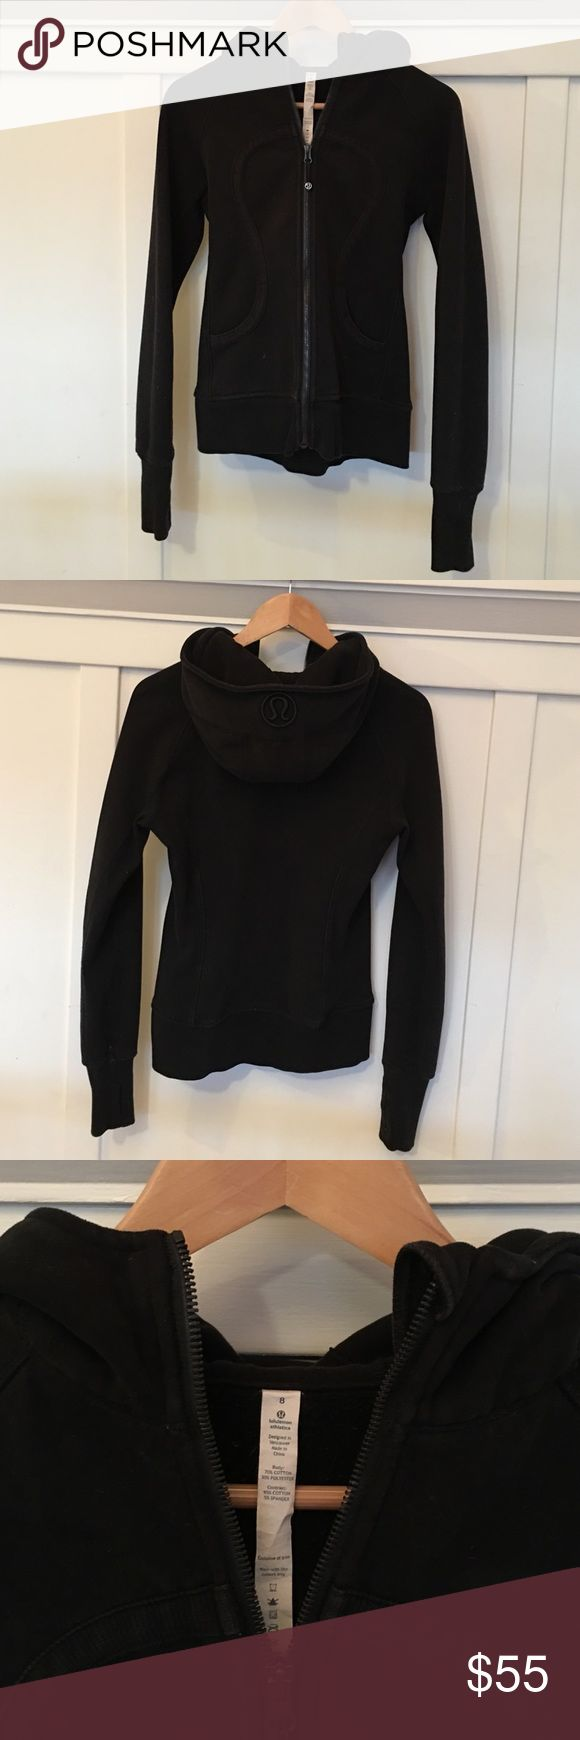 Lululemon Scuba hoodie in black! Lululemon scuba hoodie in black is such a great versatile hoodie that offers so much warmth. In really good condition except for a pen mark of some sort on the bottom right (see pic)...hence the heavy discount. Other than that really great condition! lululemon athletica Tops Sweatshirts & Hoodies